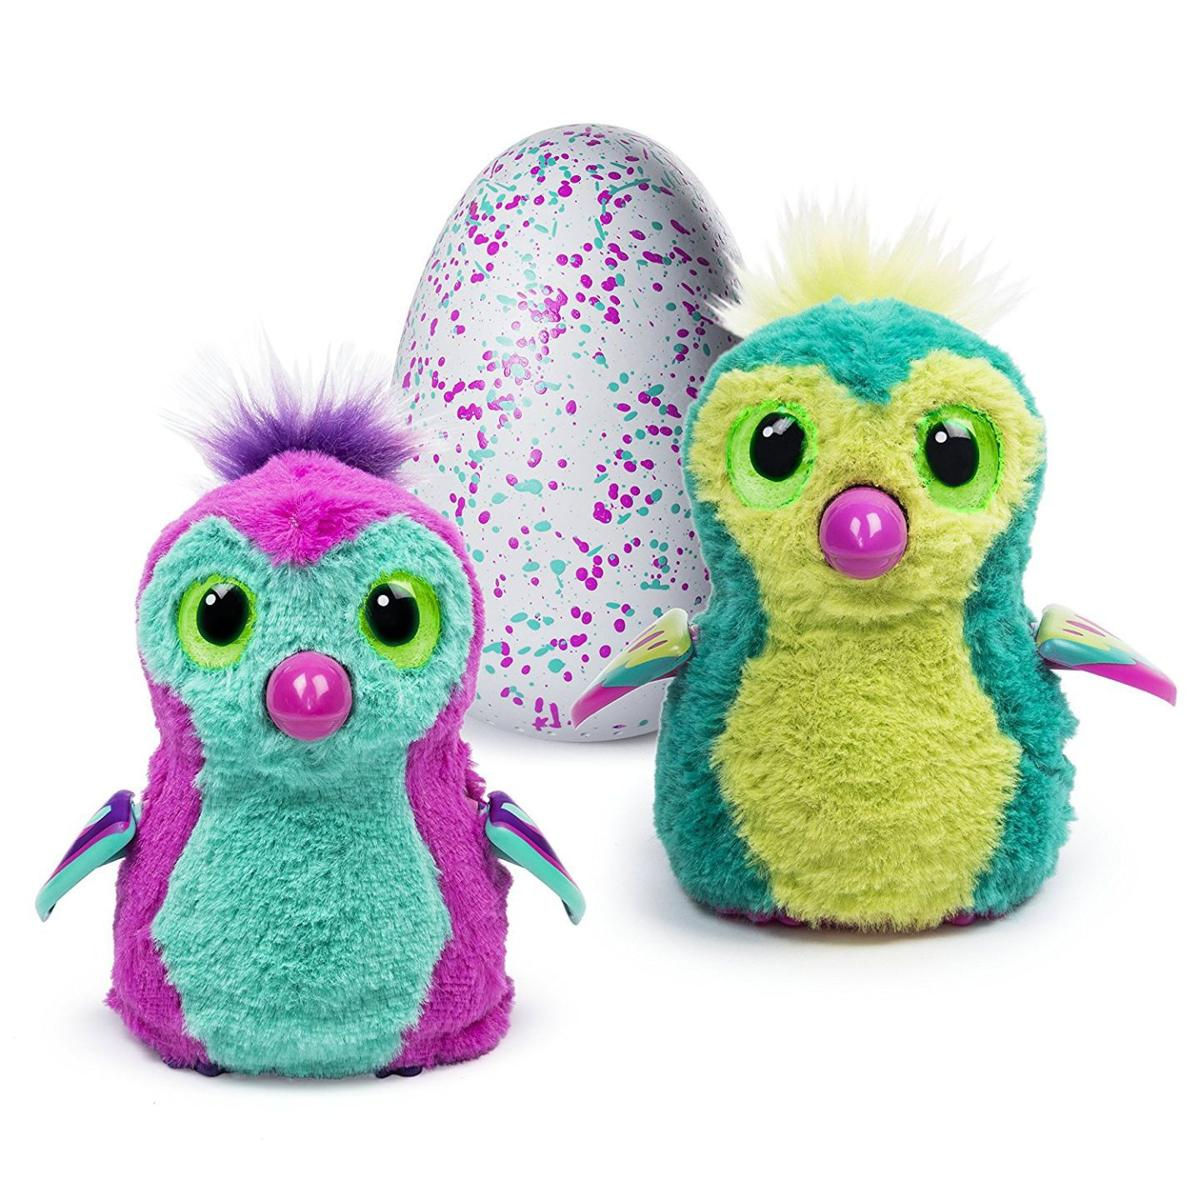 Hunting For A Hatchimal Technology Can Help Trends